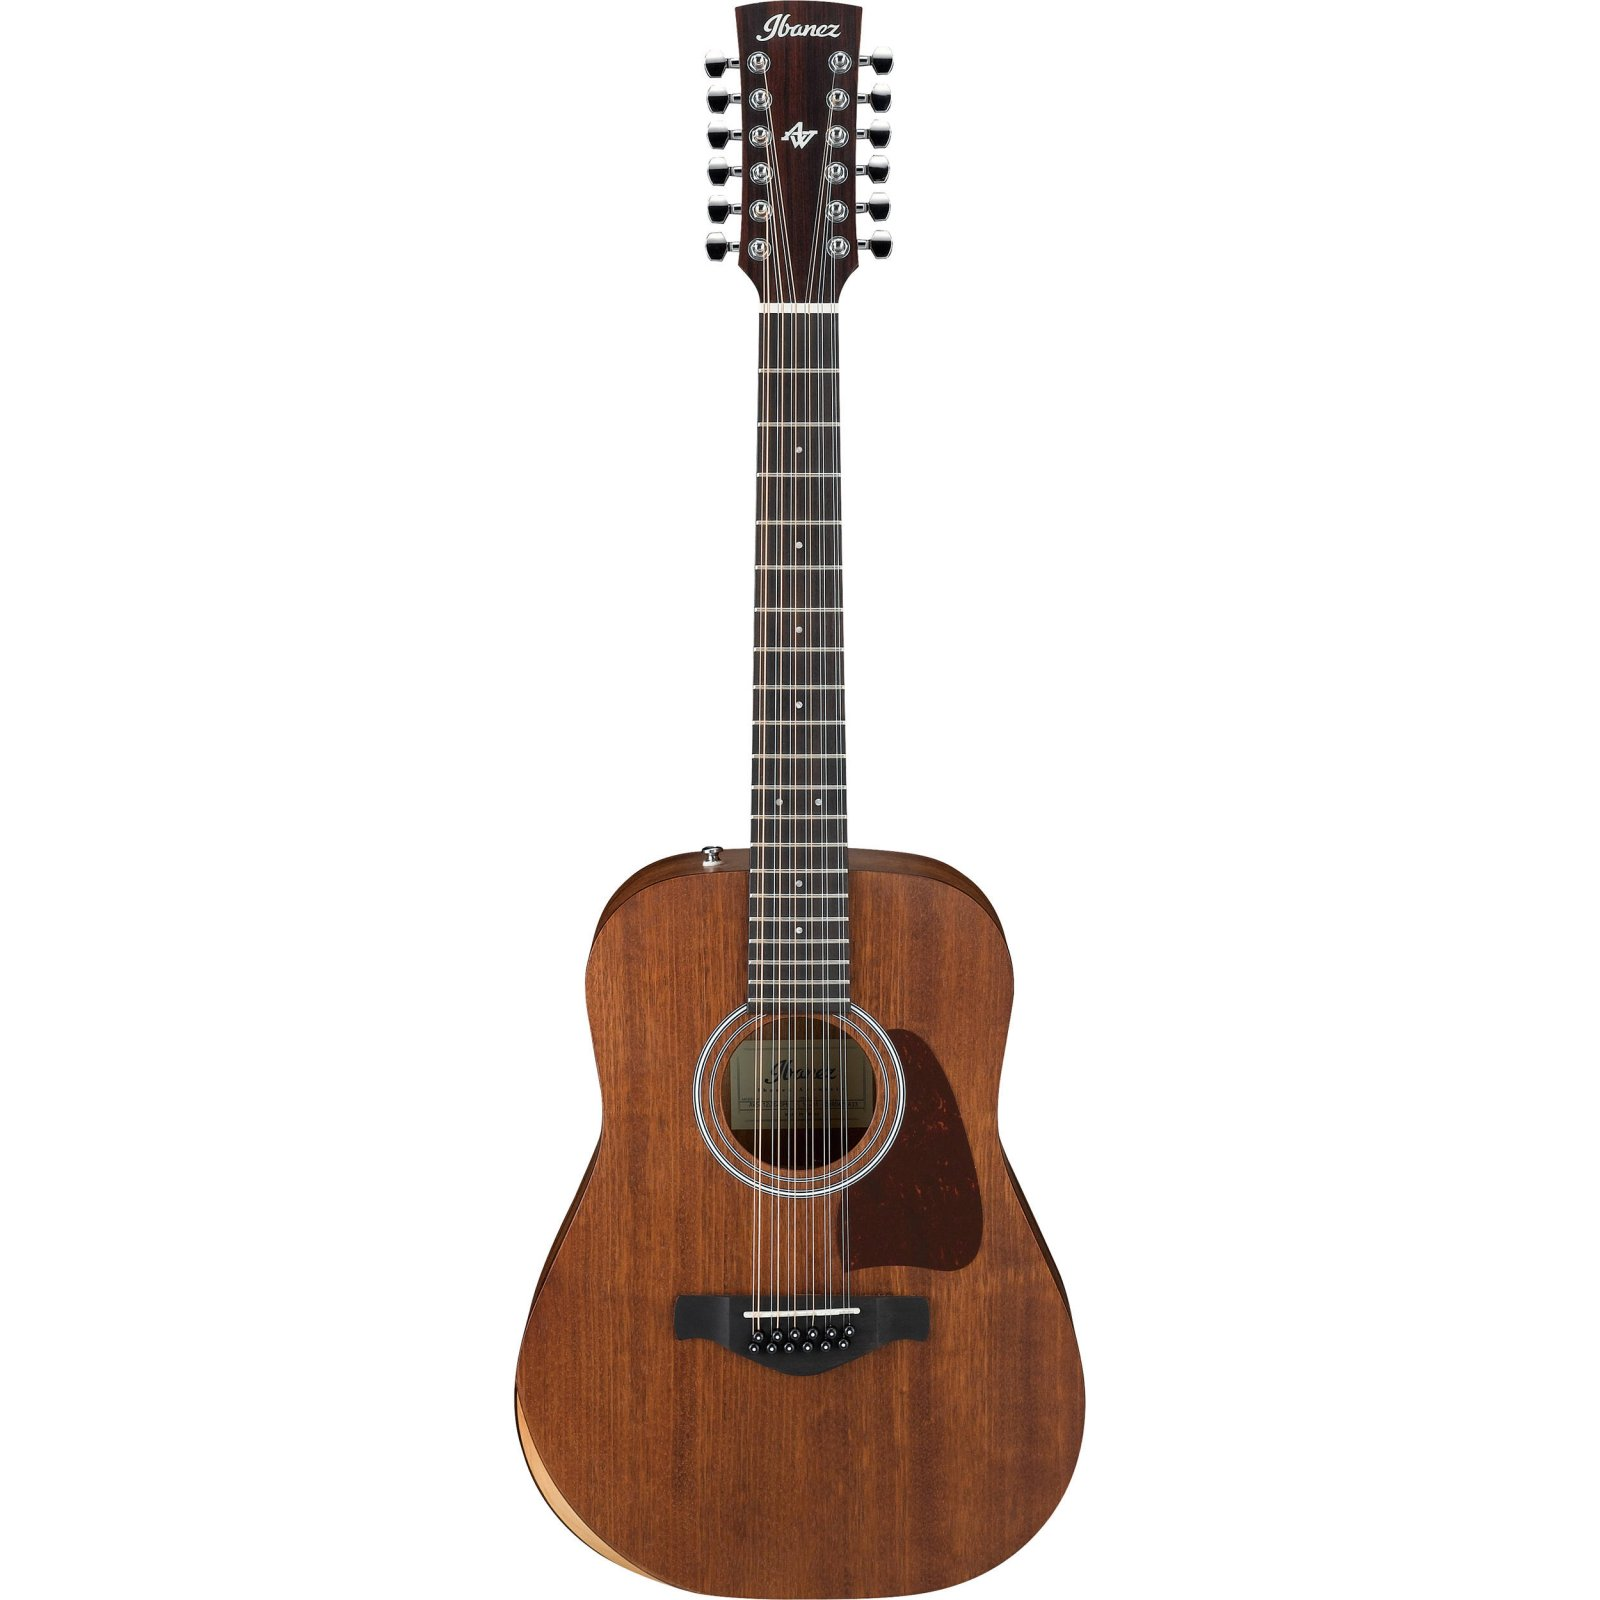 Ibanez AW5412JROPN - 12 string Artwood guitar - Solid Okoume top - Open Pore Natural